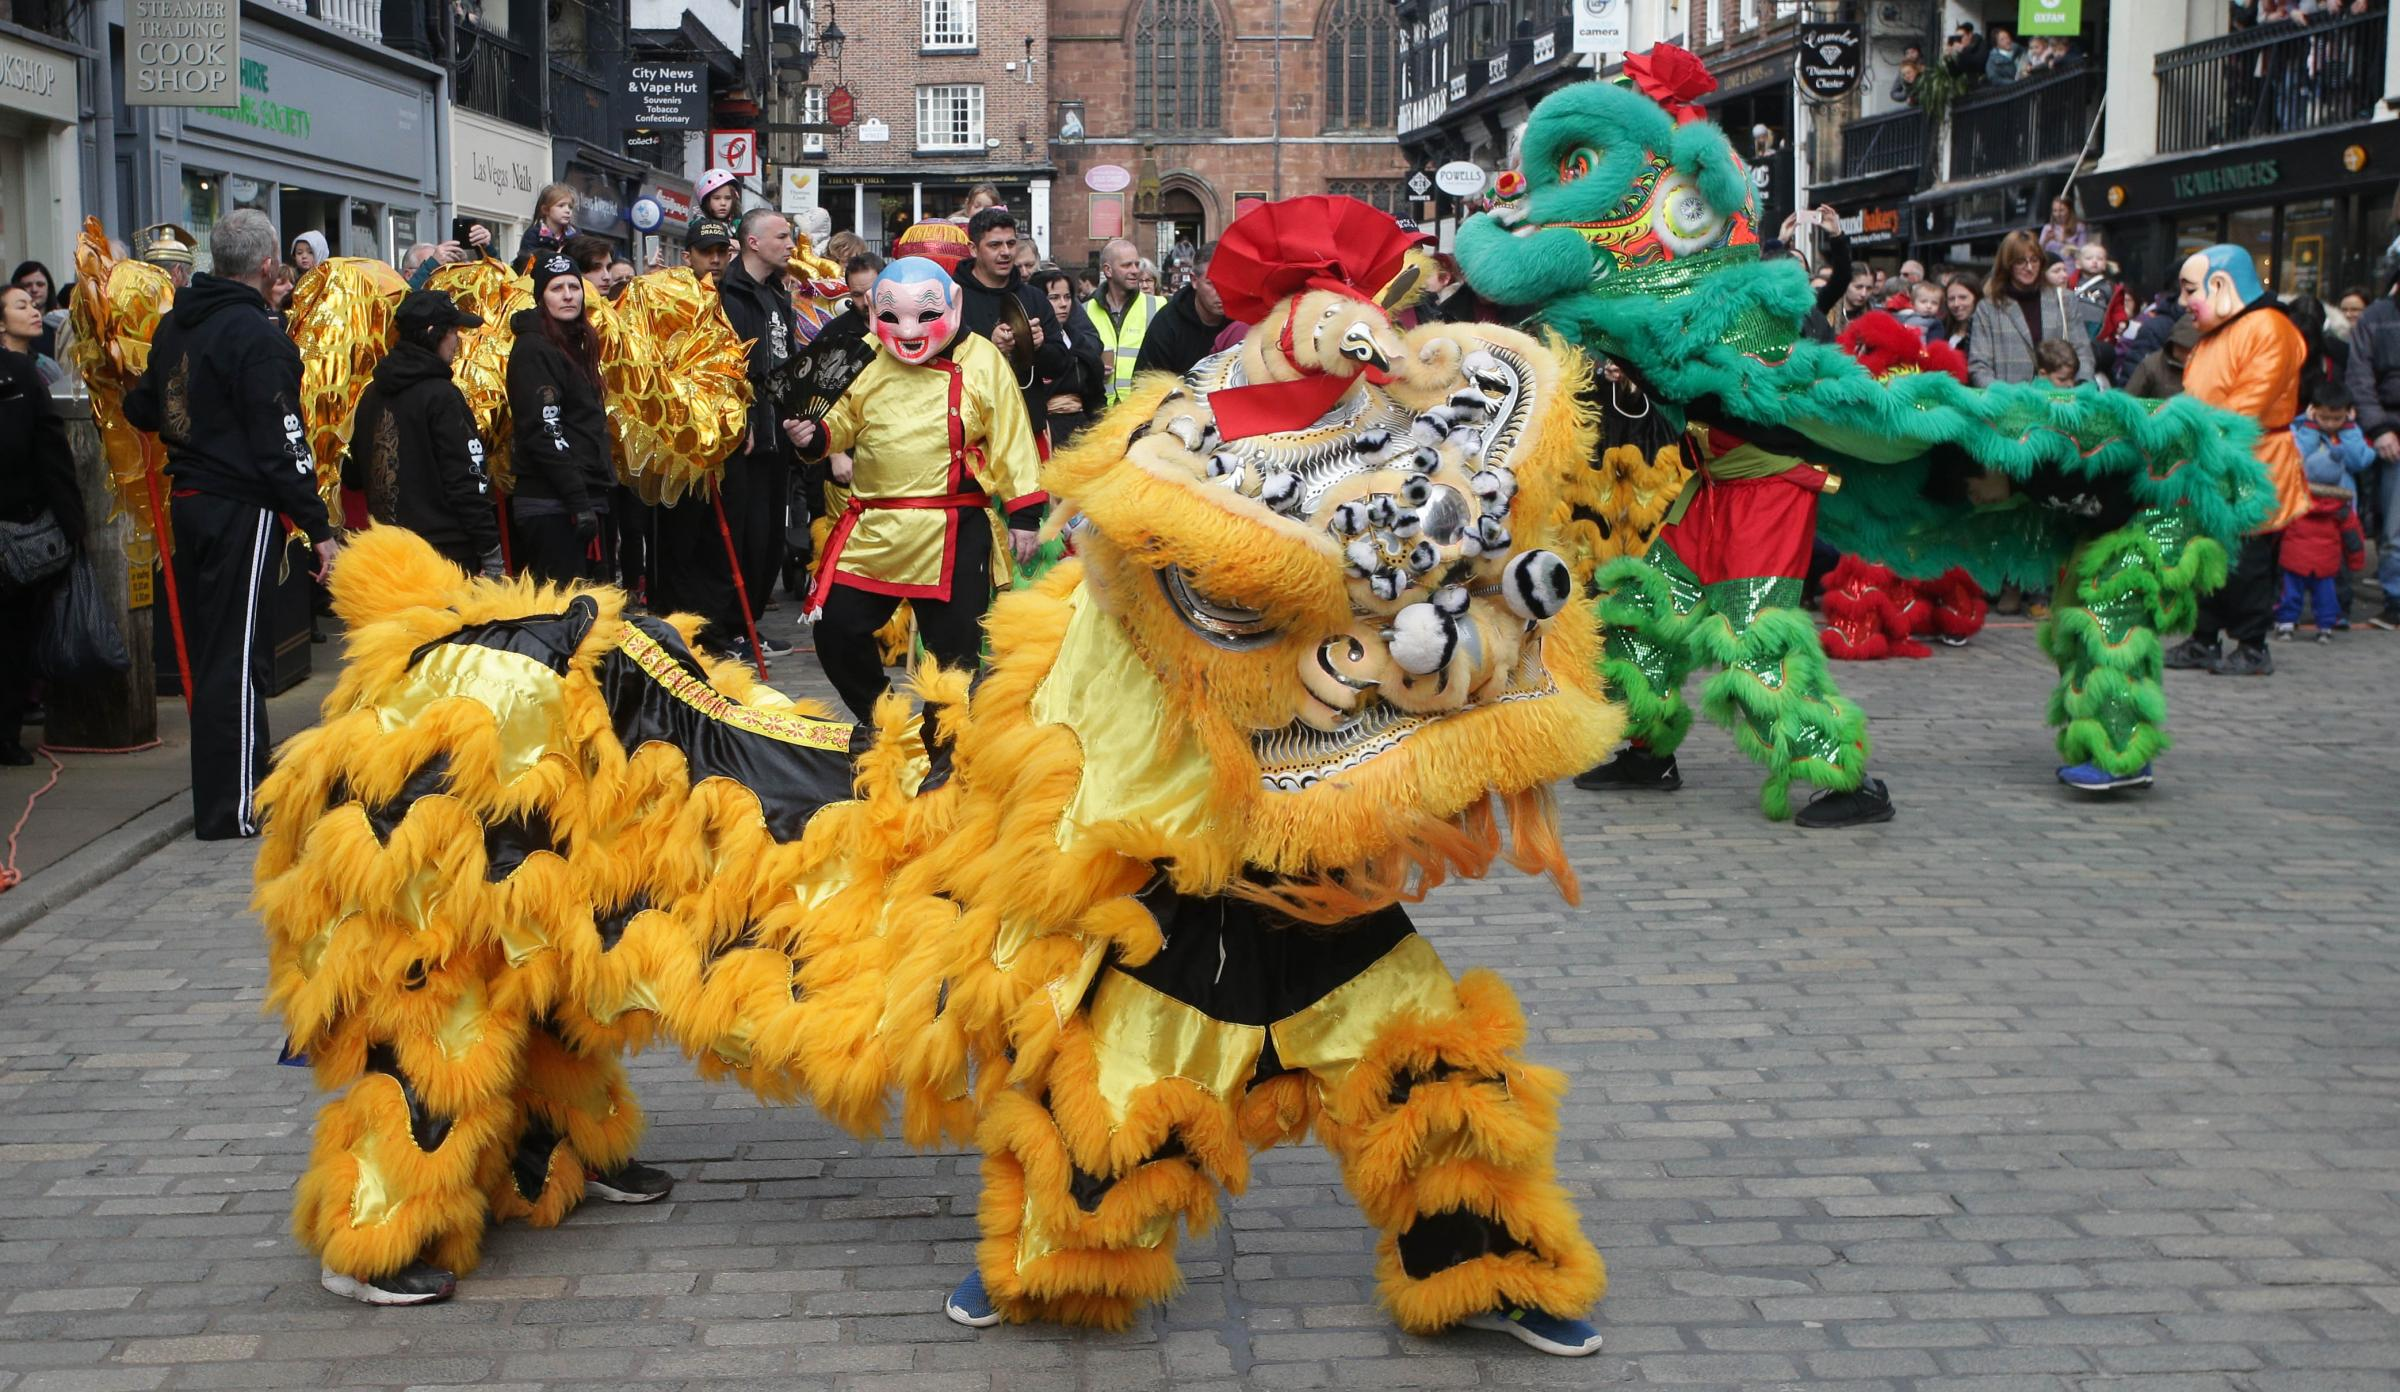 RM170218cChesterChinese New Year CelebrationsGong hei fat choyYear of the  dogWah Lei Chinese AssociationWaking the dragon in the streets of Chester